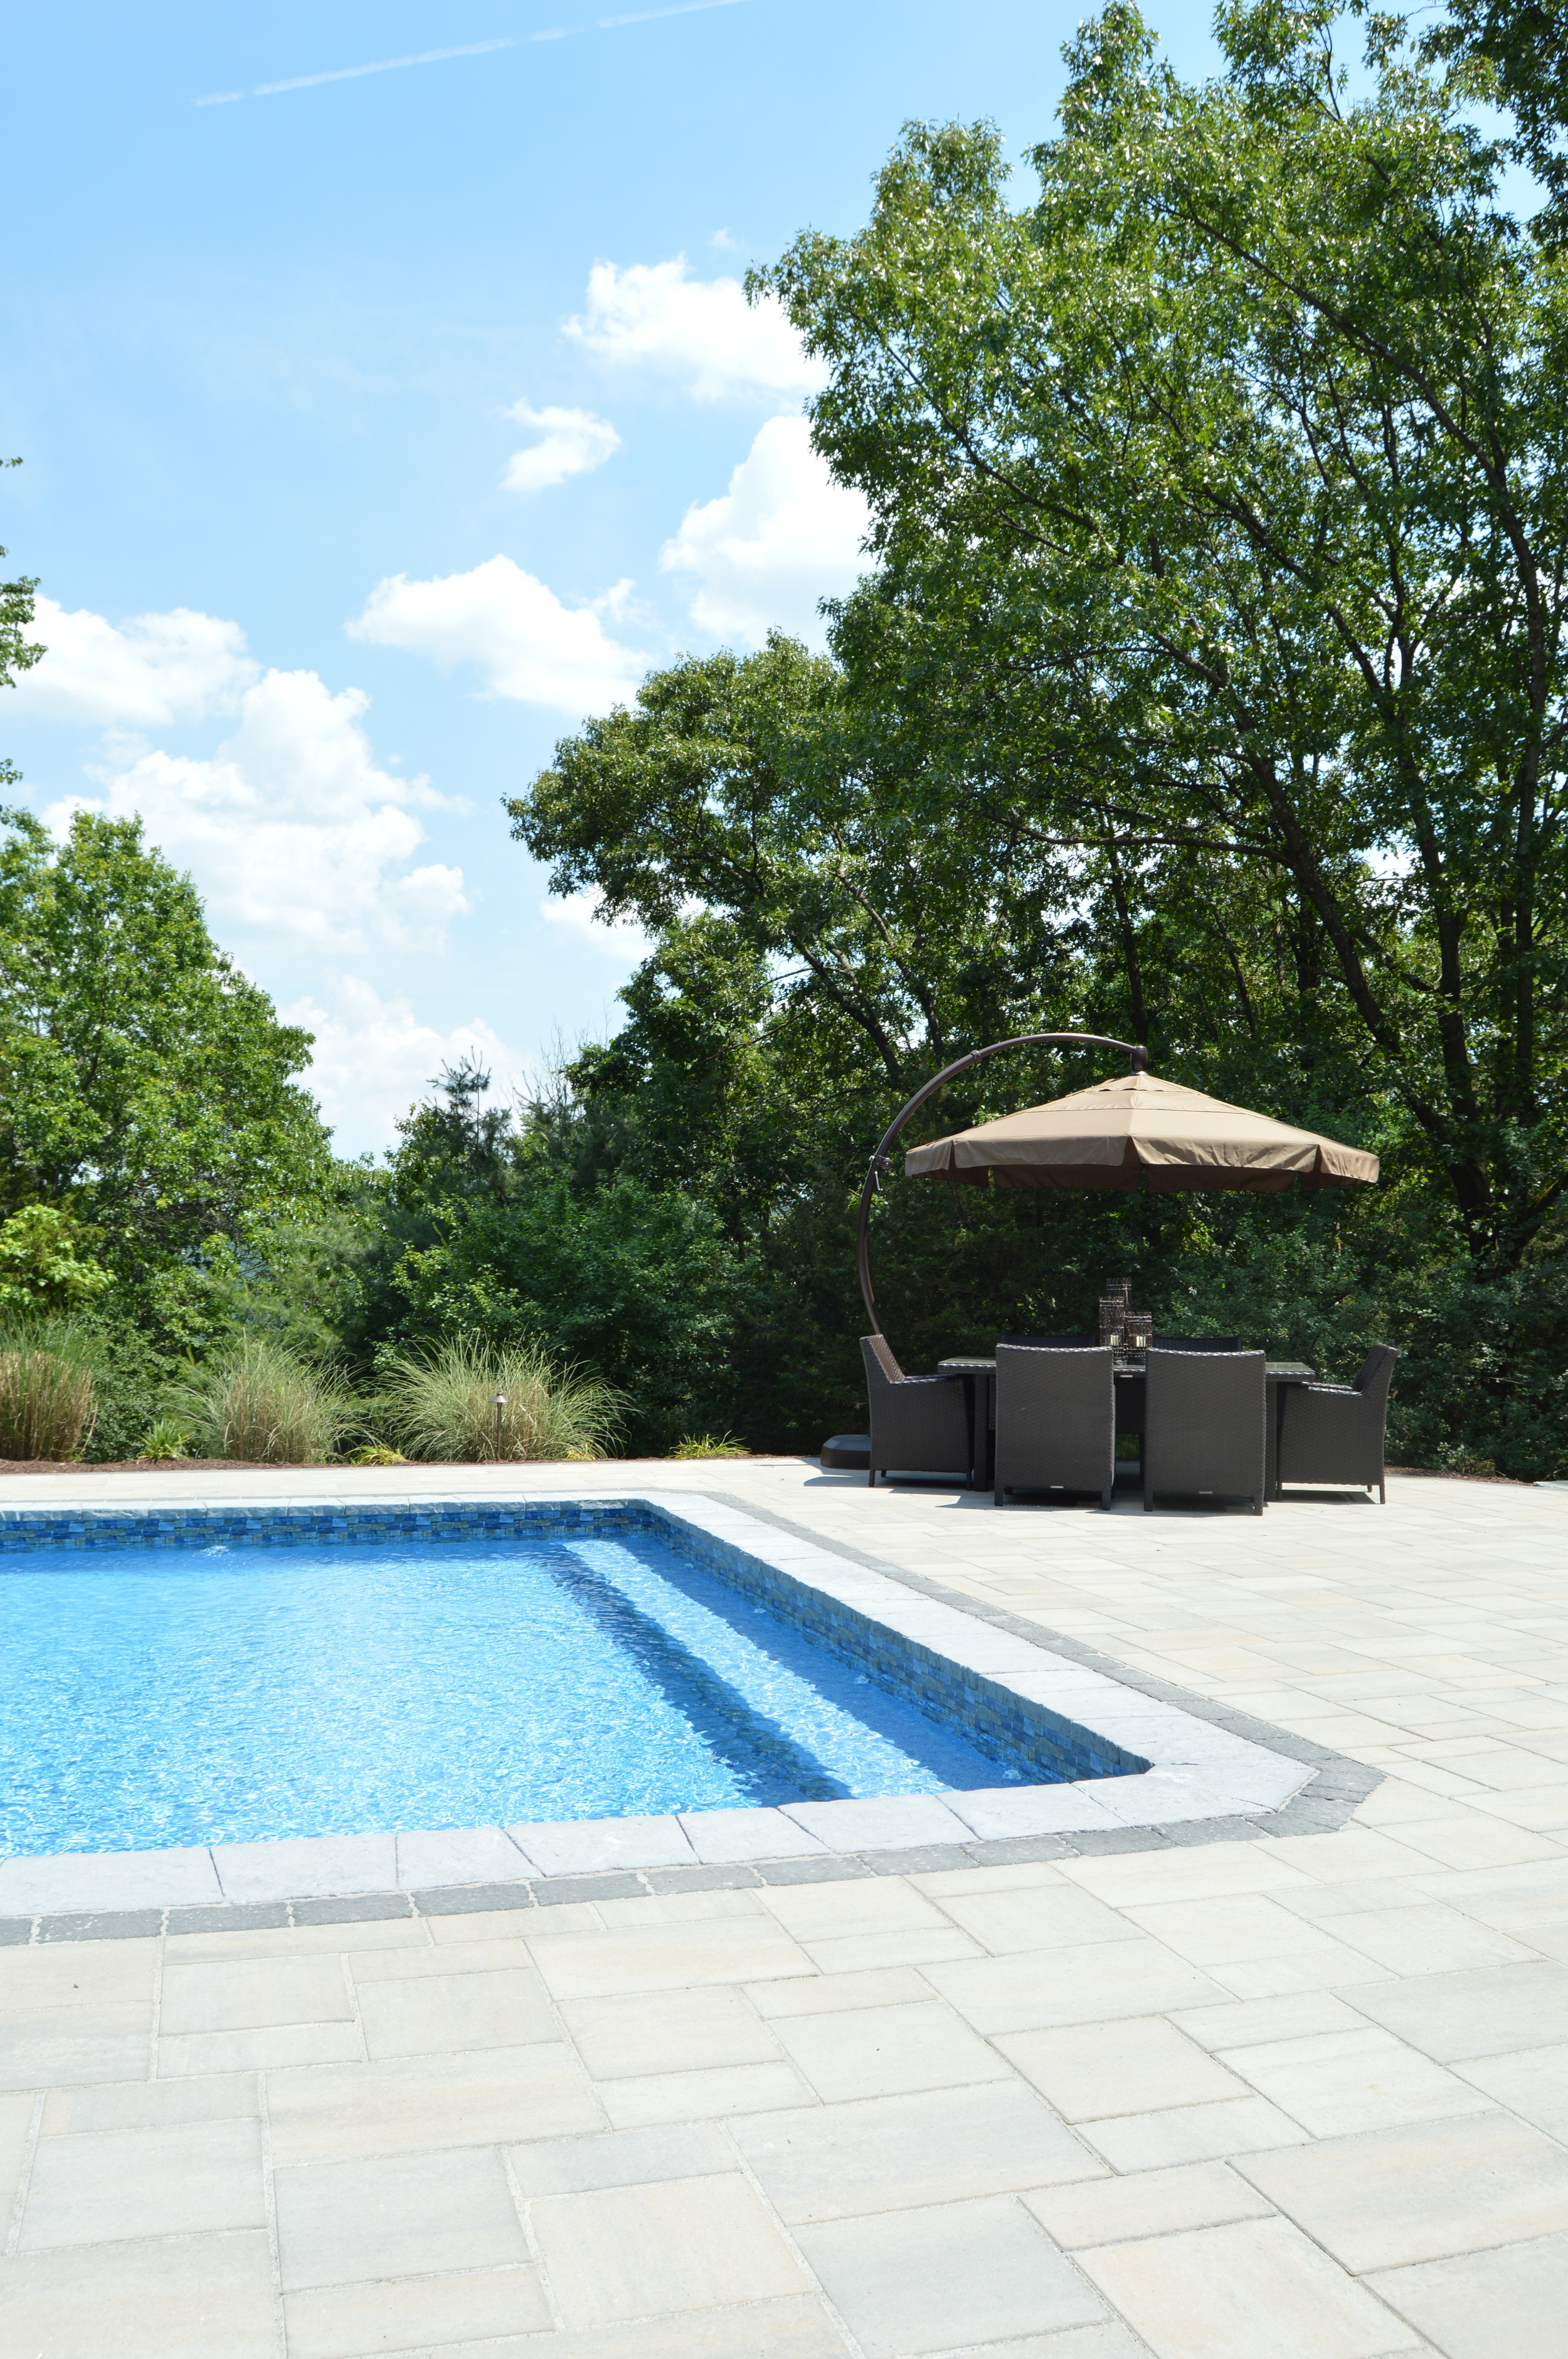 swimming pool oasis in bethel, ny